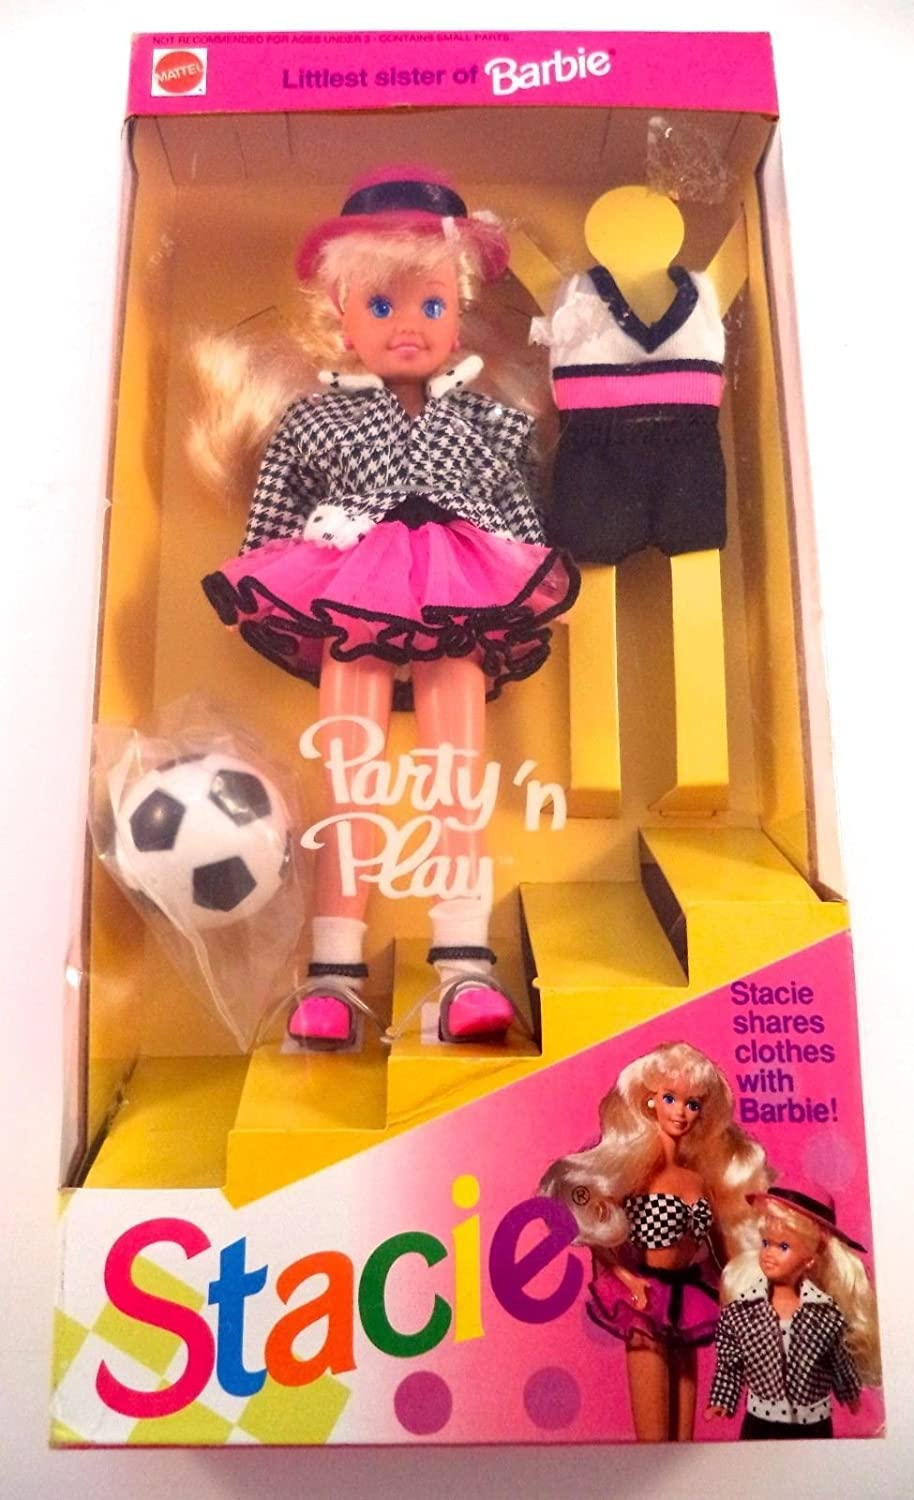 Barbie El Paso Mall - Party 'n Play STACIE 19 Luxury goods Sister Littlest Doll of